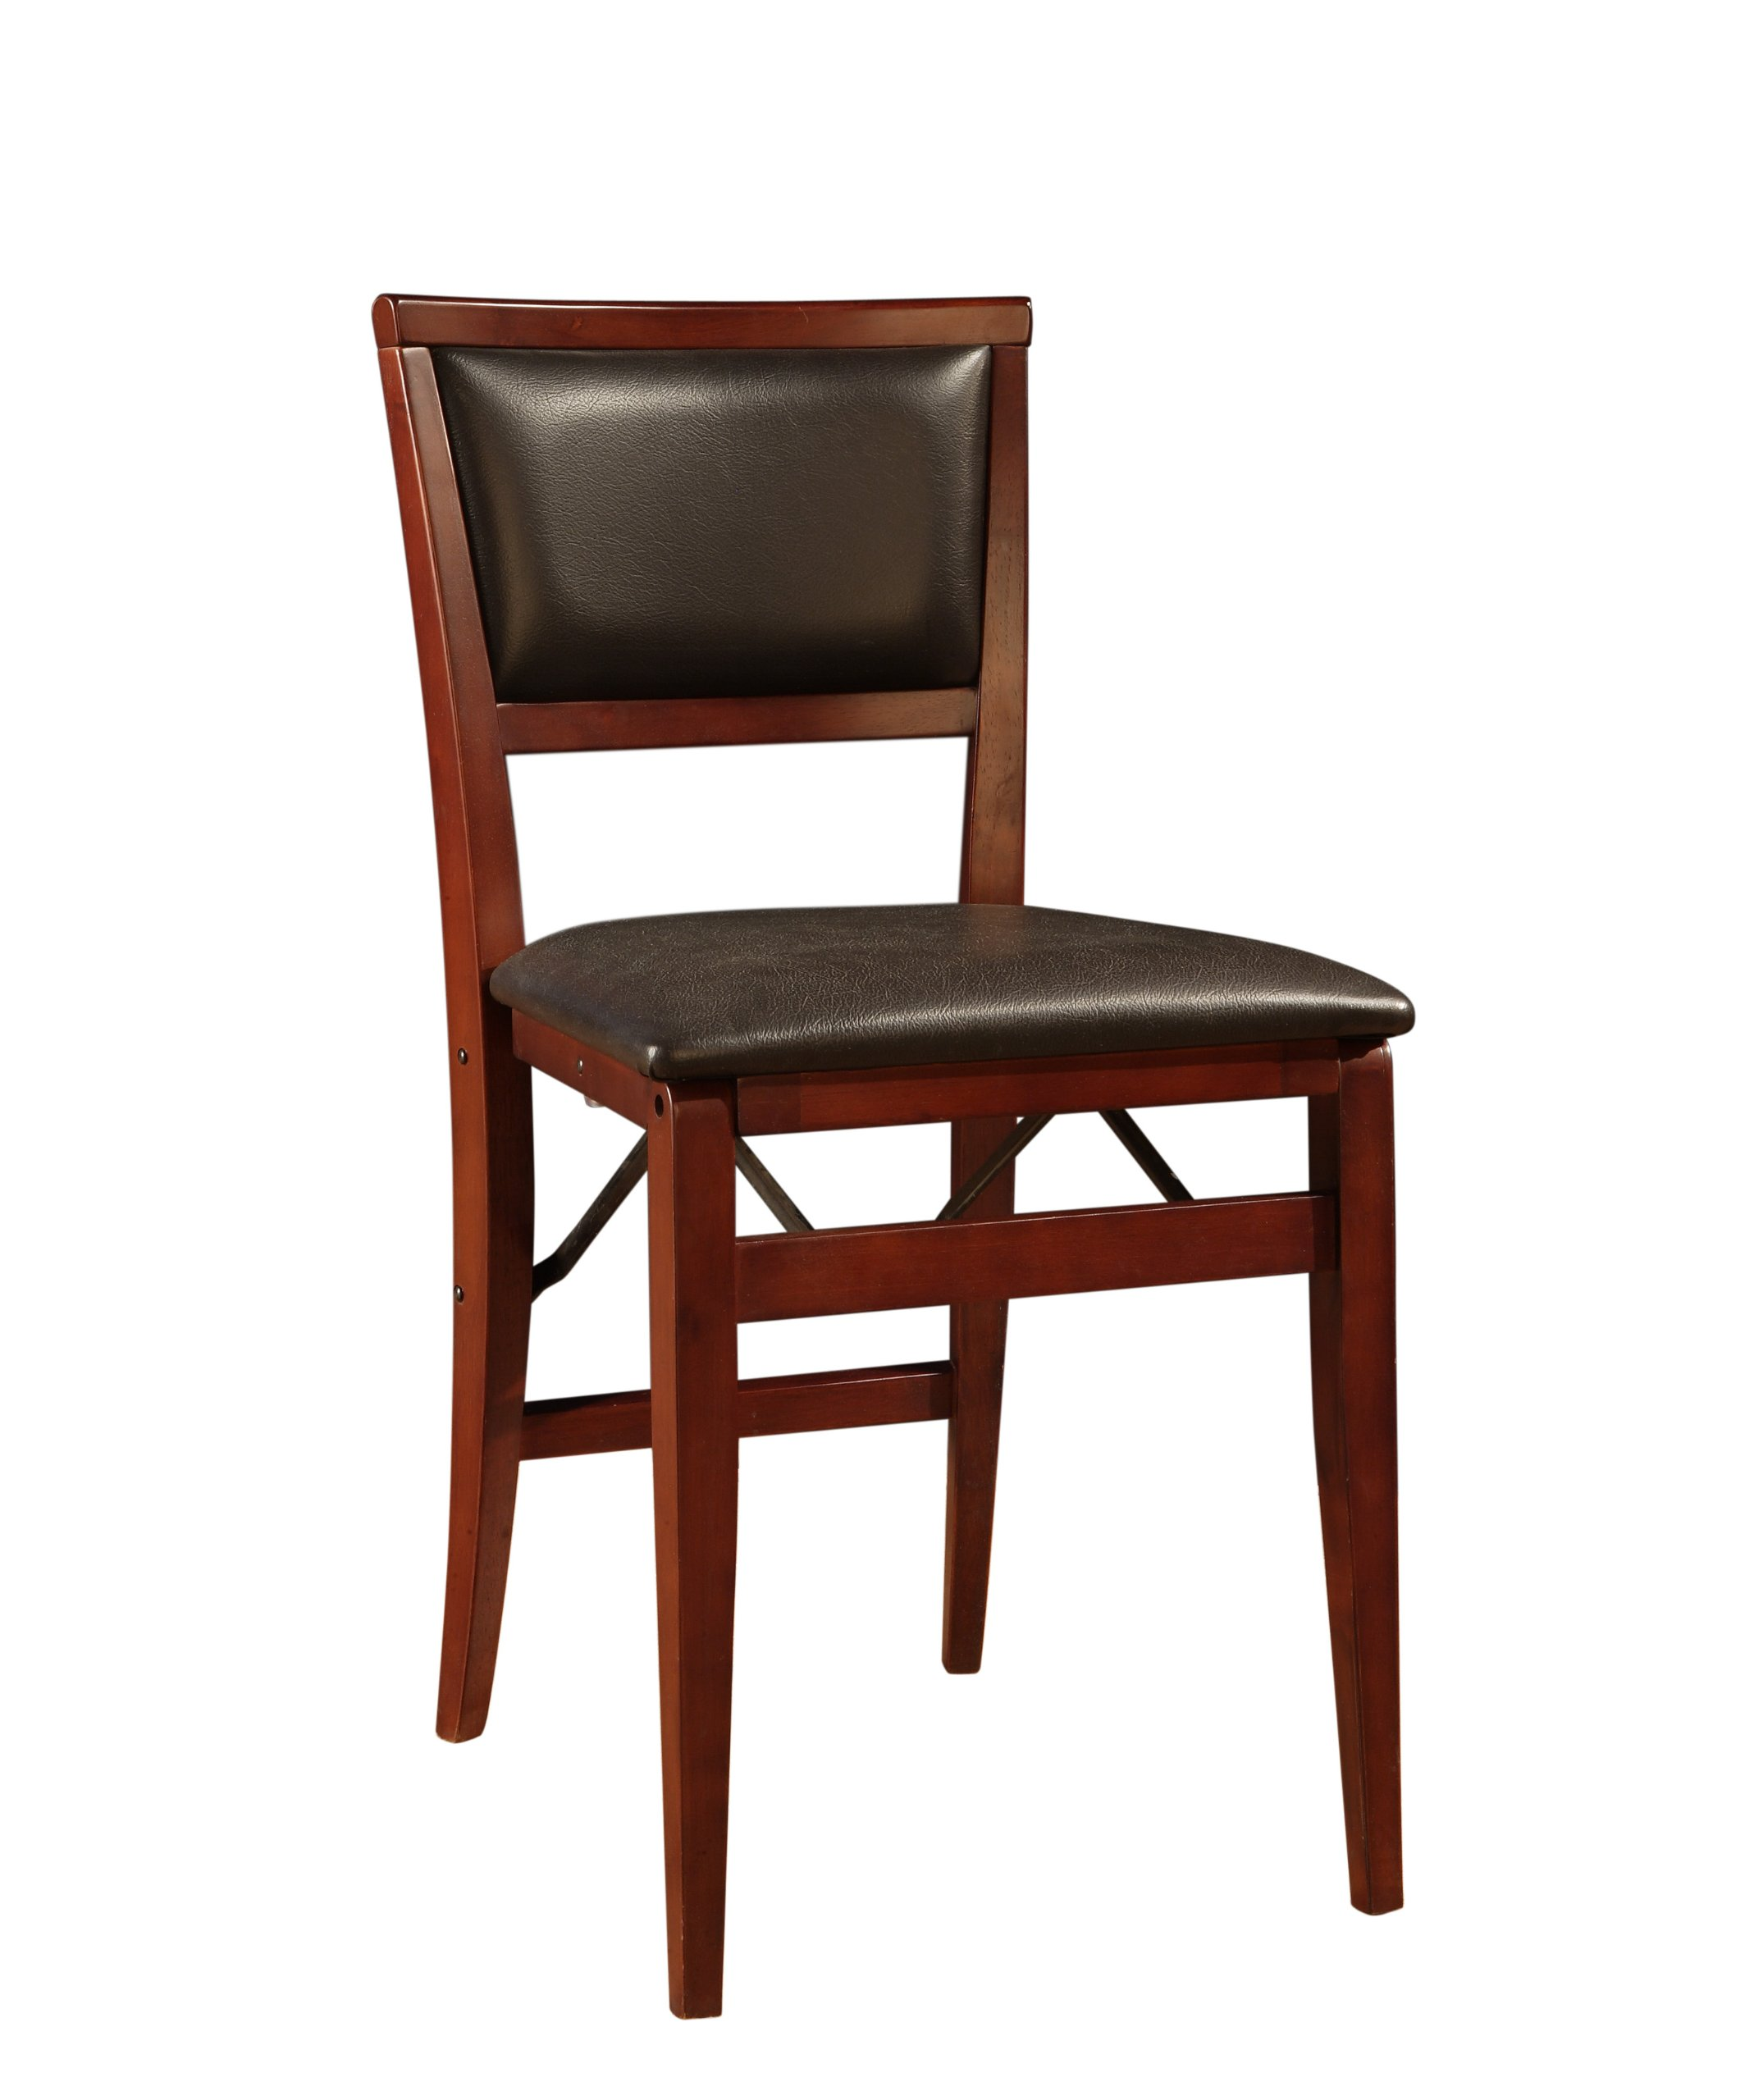 Linon Keira Pad Folding Chair, Set of 2 by Linon